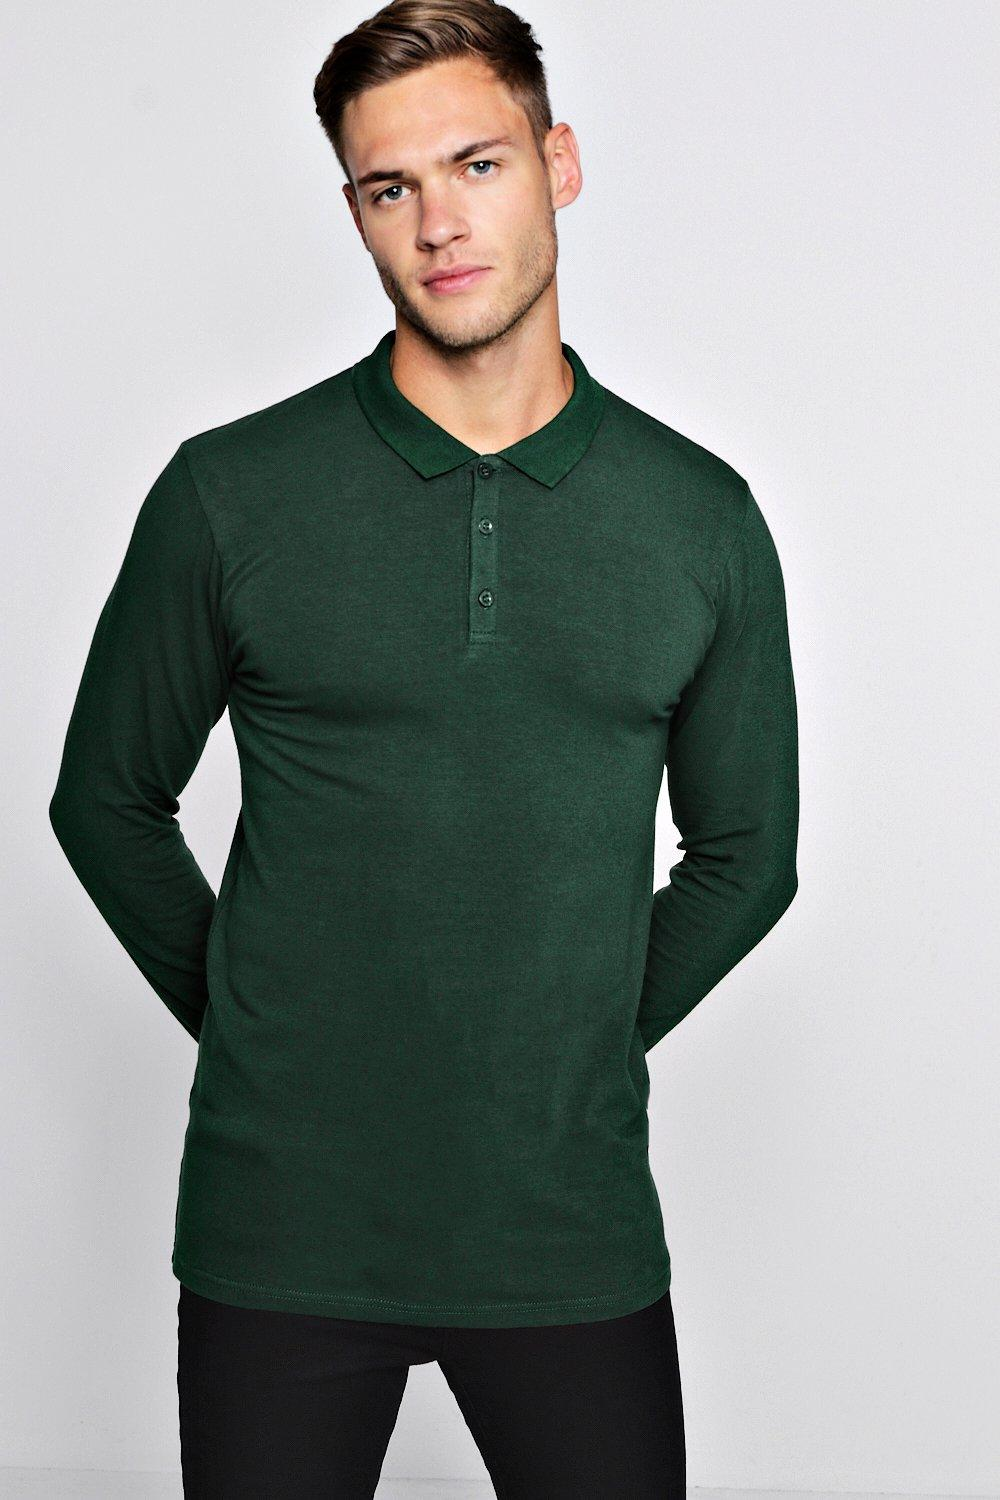 boohooMAN green Long Sleeve Extreme Muscle Fit Polo